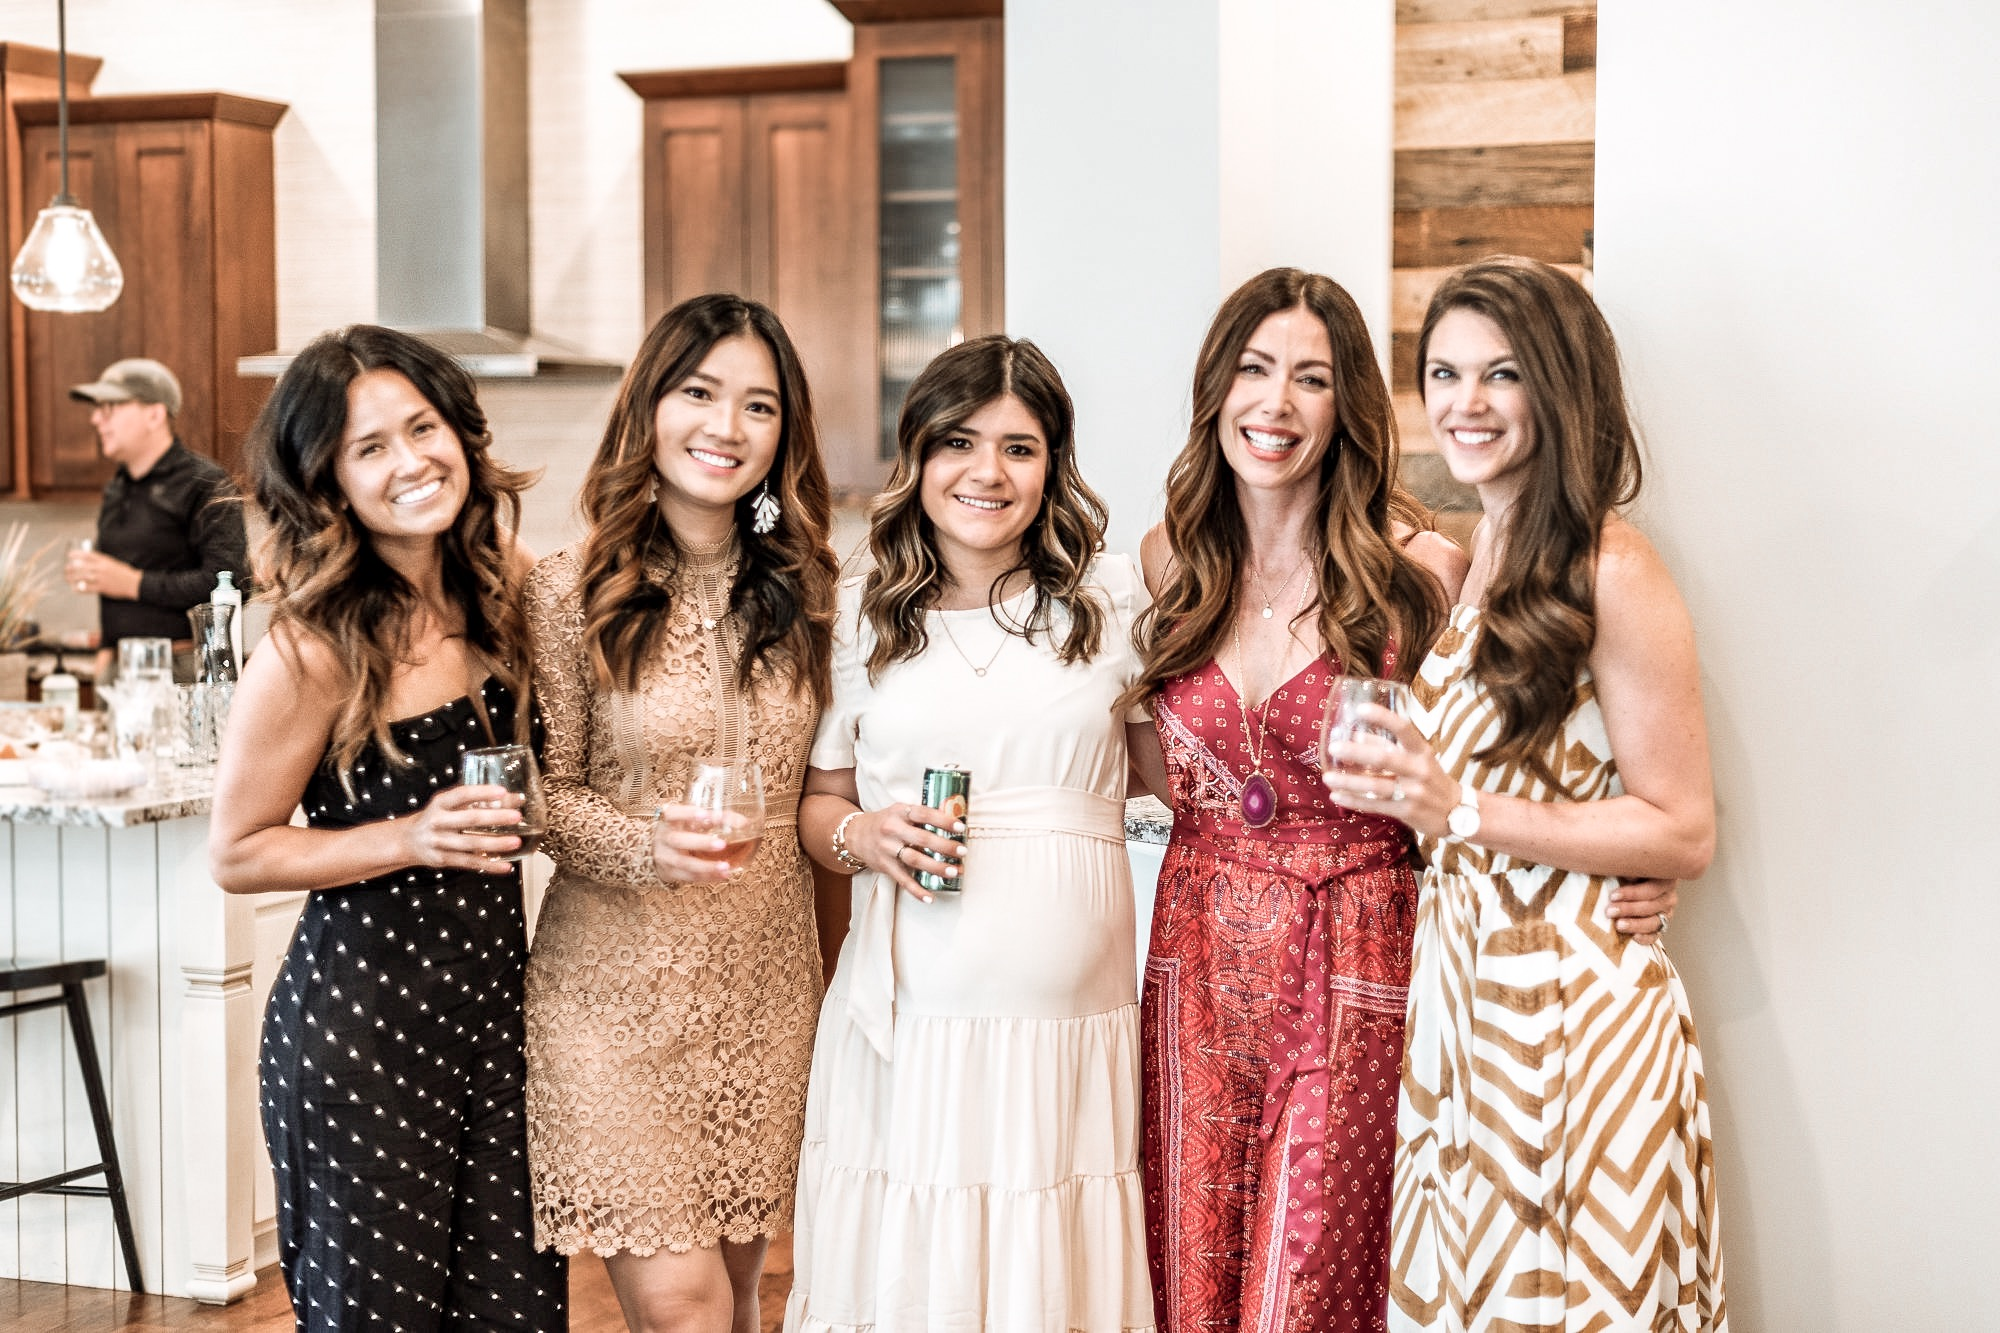 With my girls Desire, Lily, Carolina and Katie Ann (@desirefalk, @withlovelilyrose, @chictalkch, @thehollytree_)